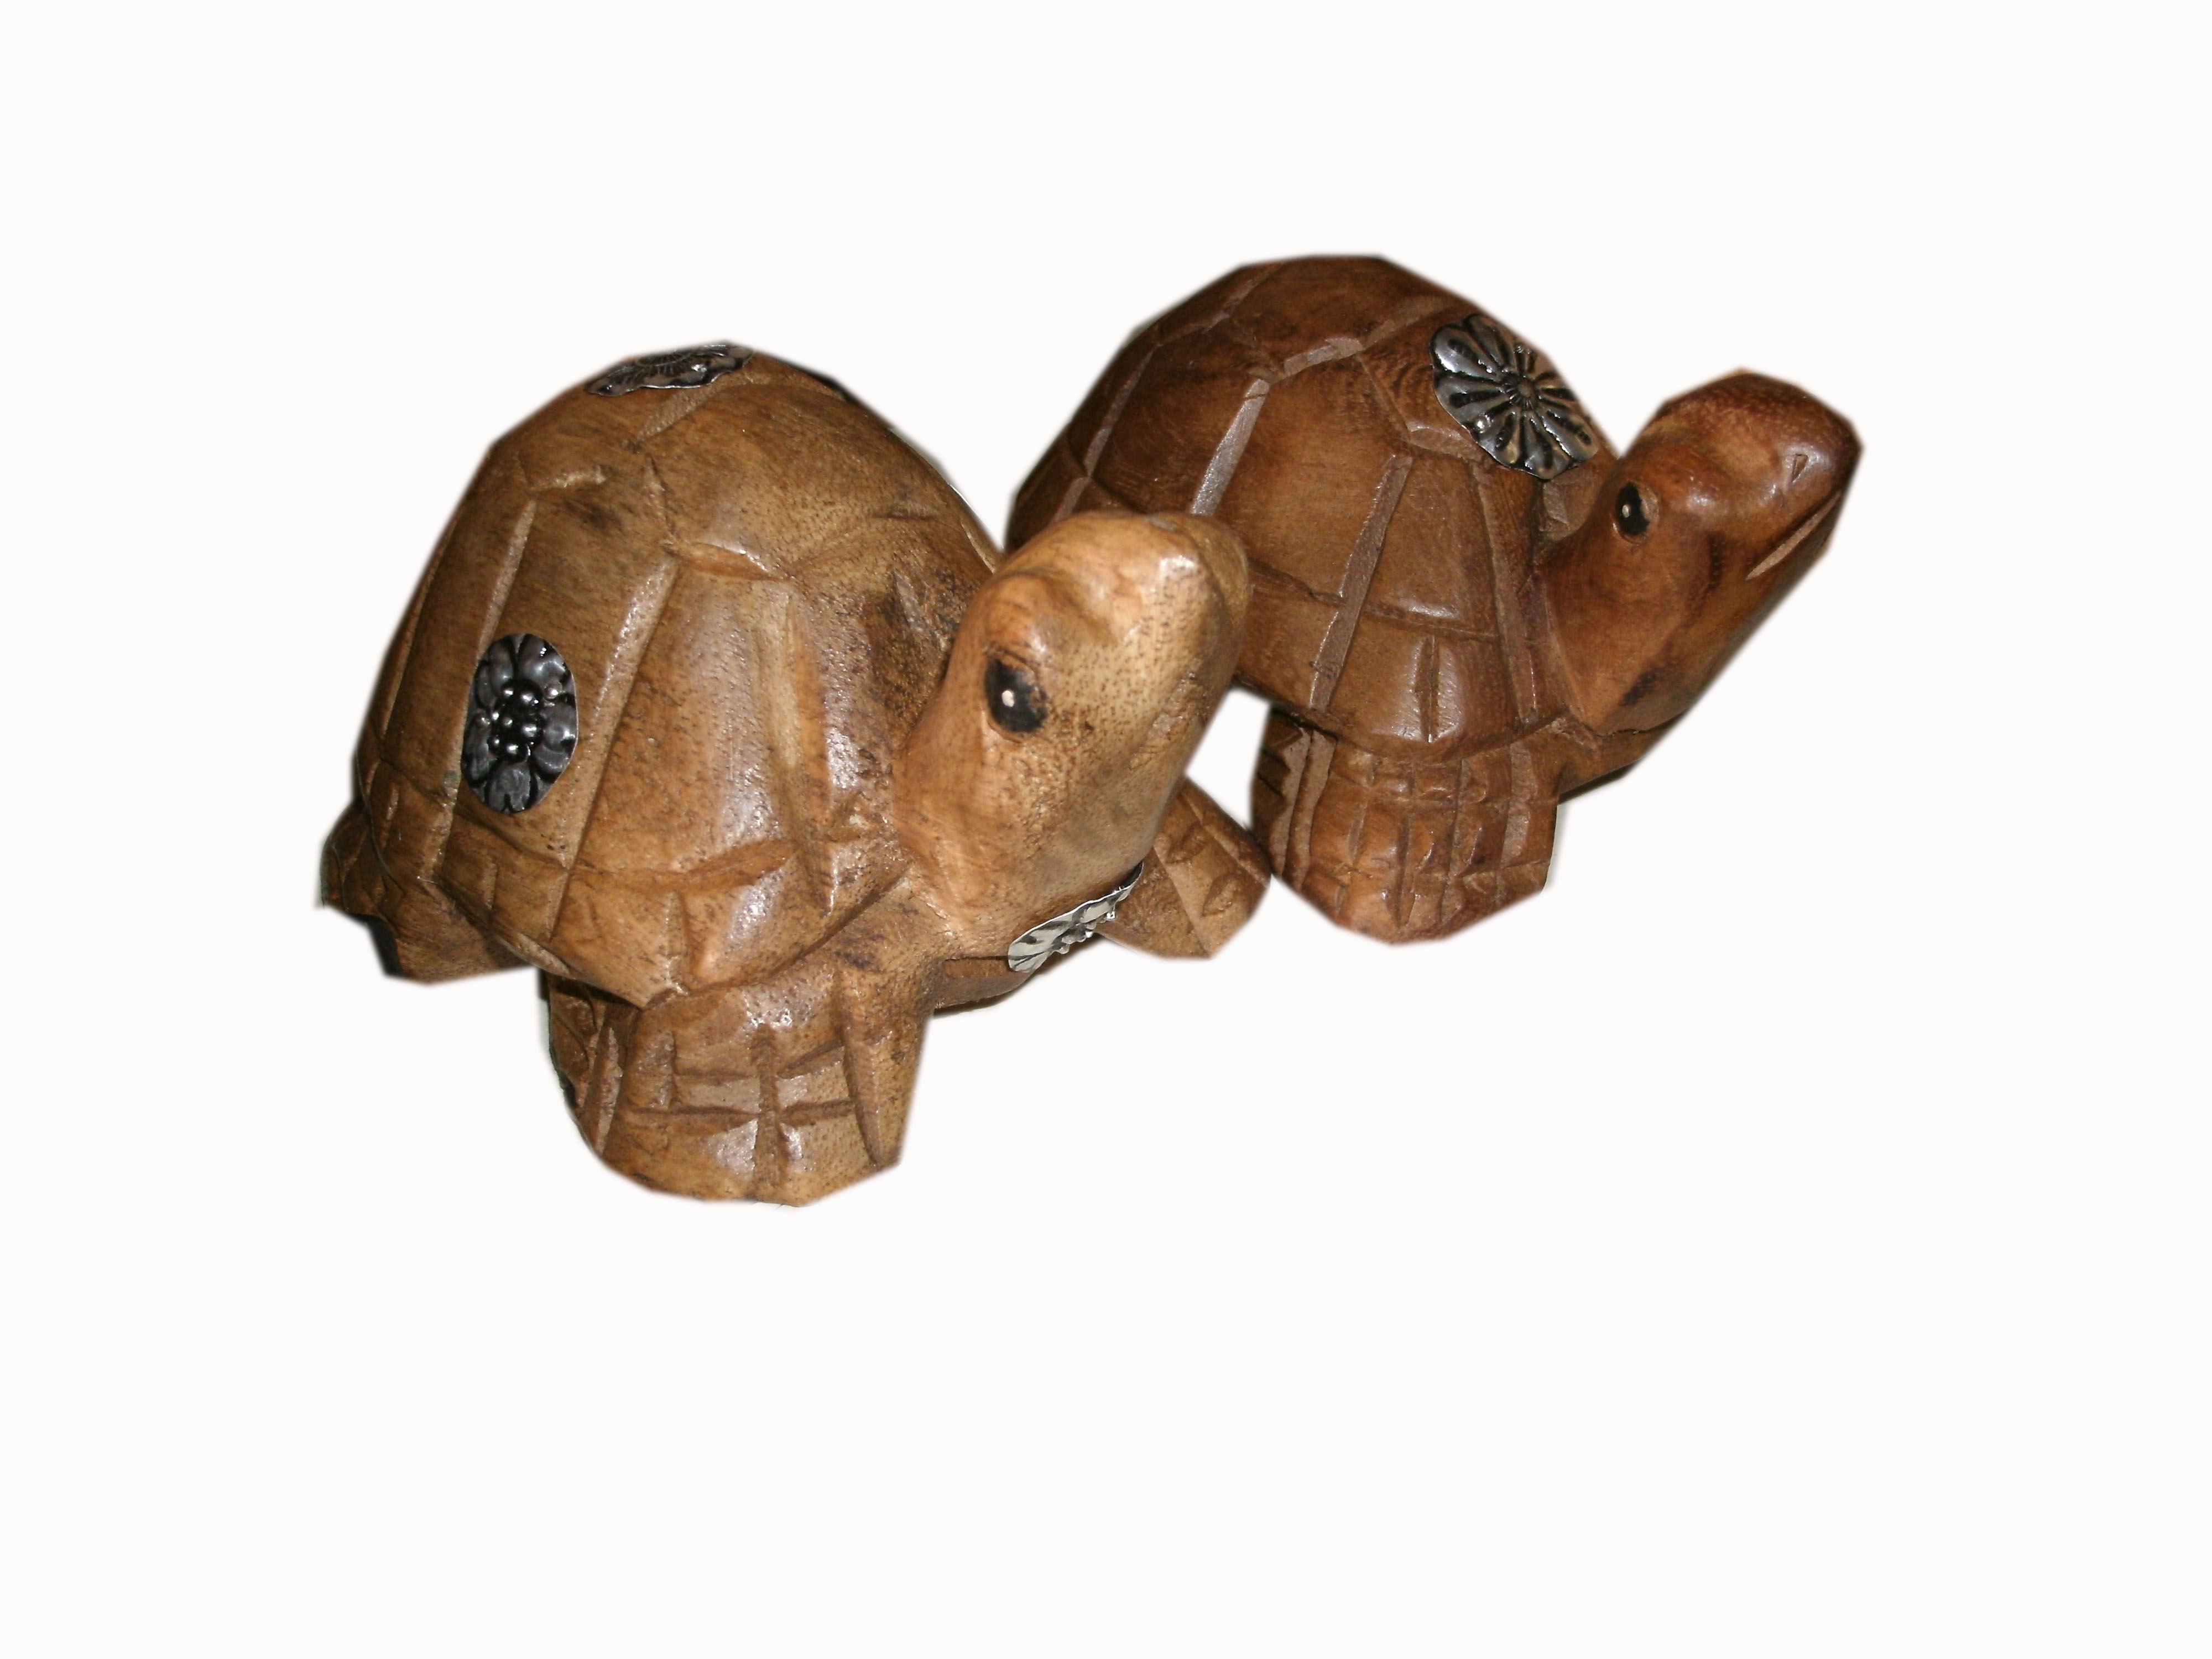 wood turtle figurine